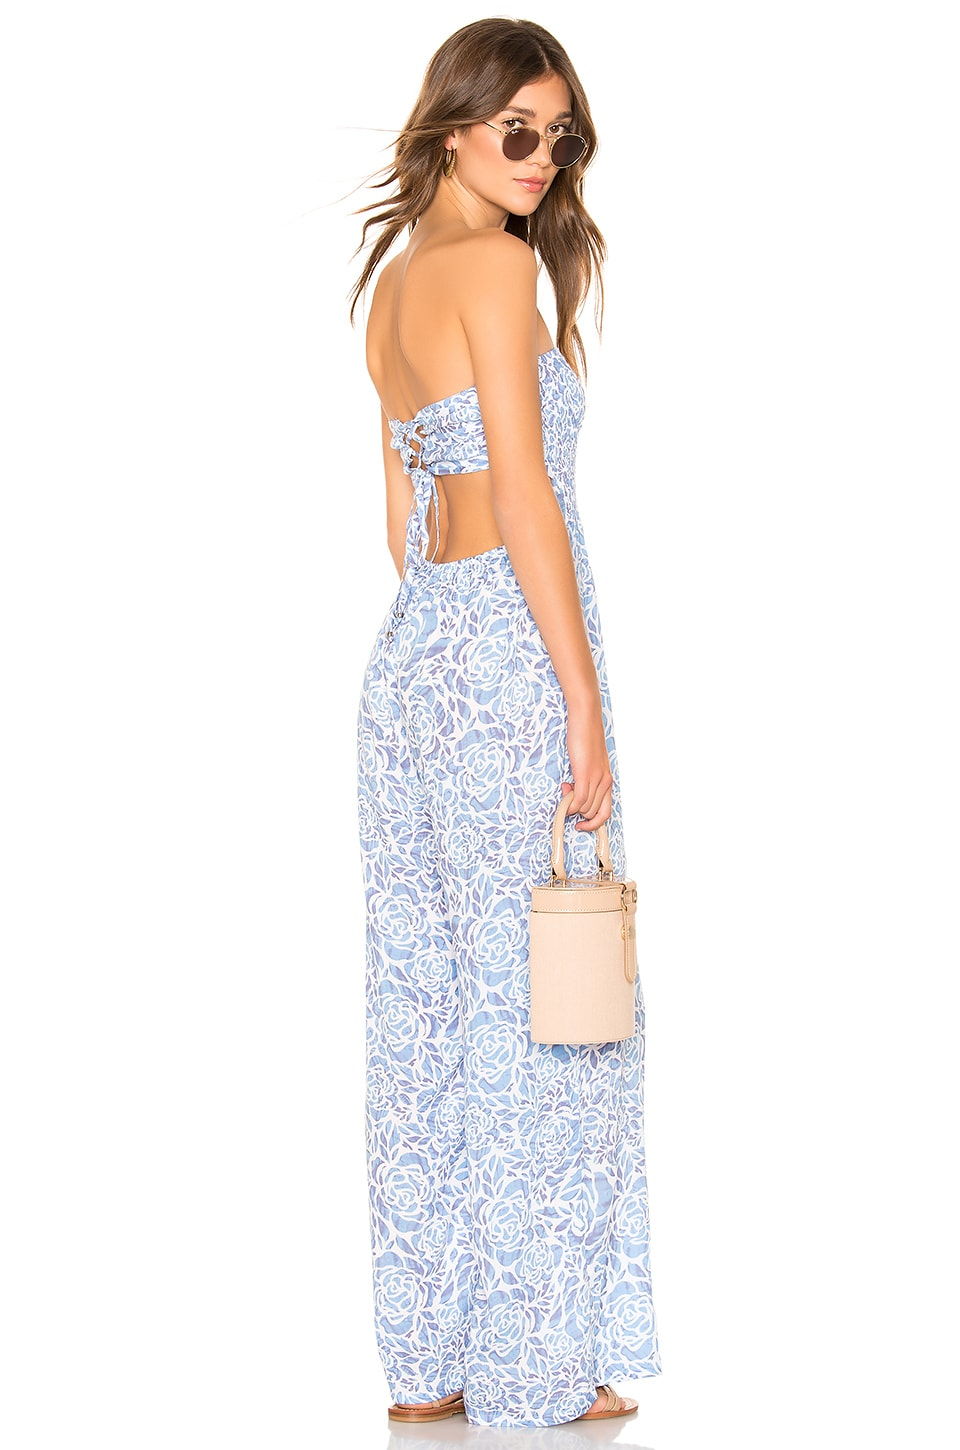 Tiare Hawaii Bennett Jumpsuit in Stained Floral Blue & Mauve